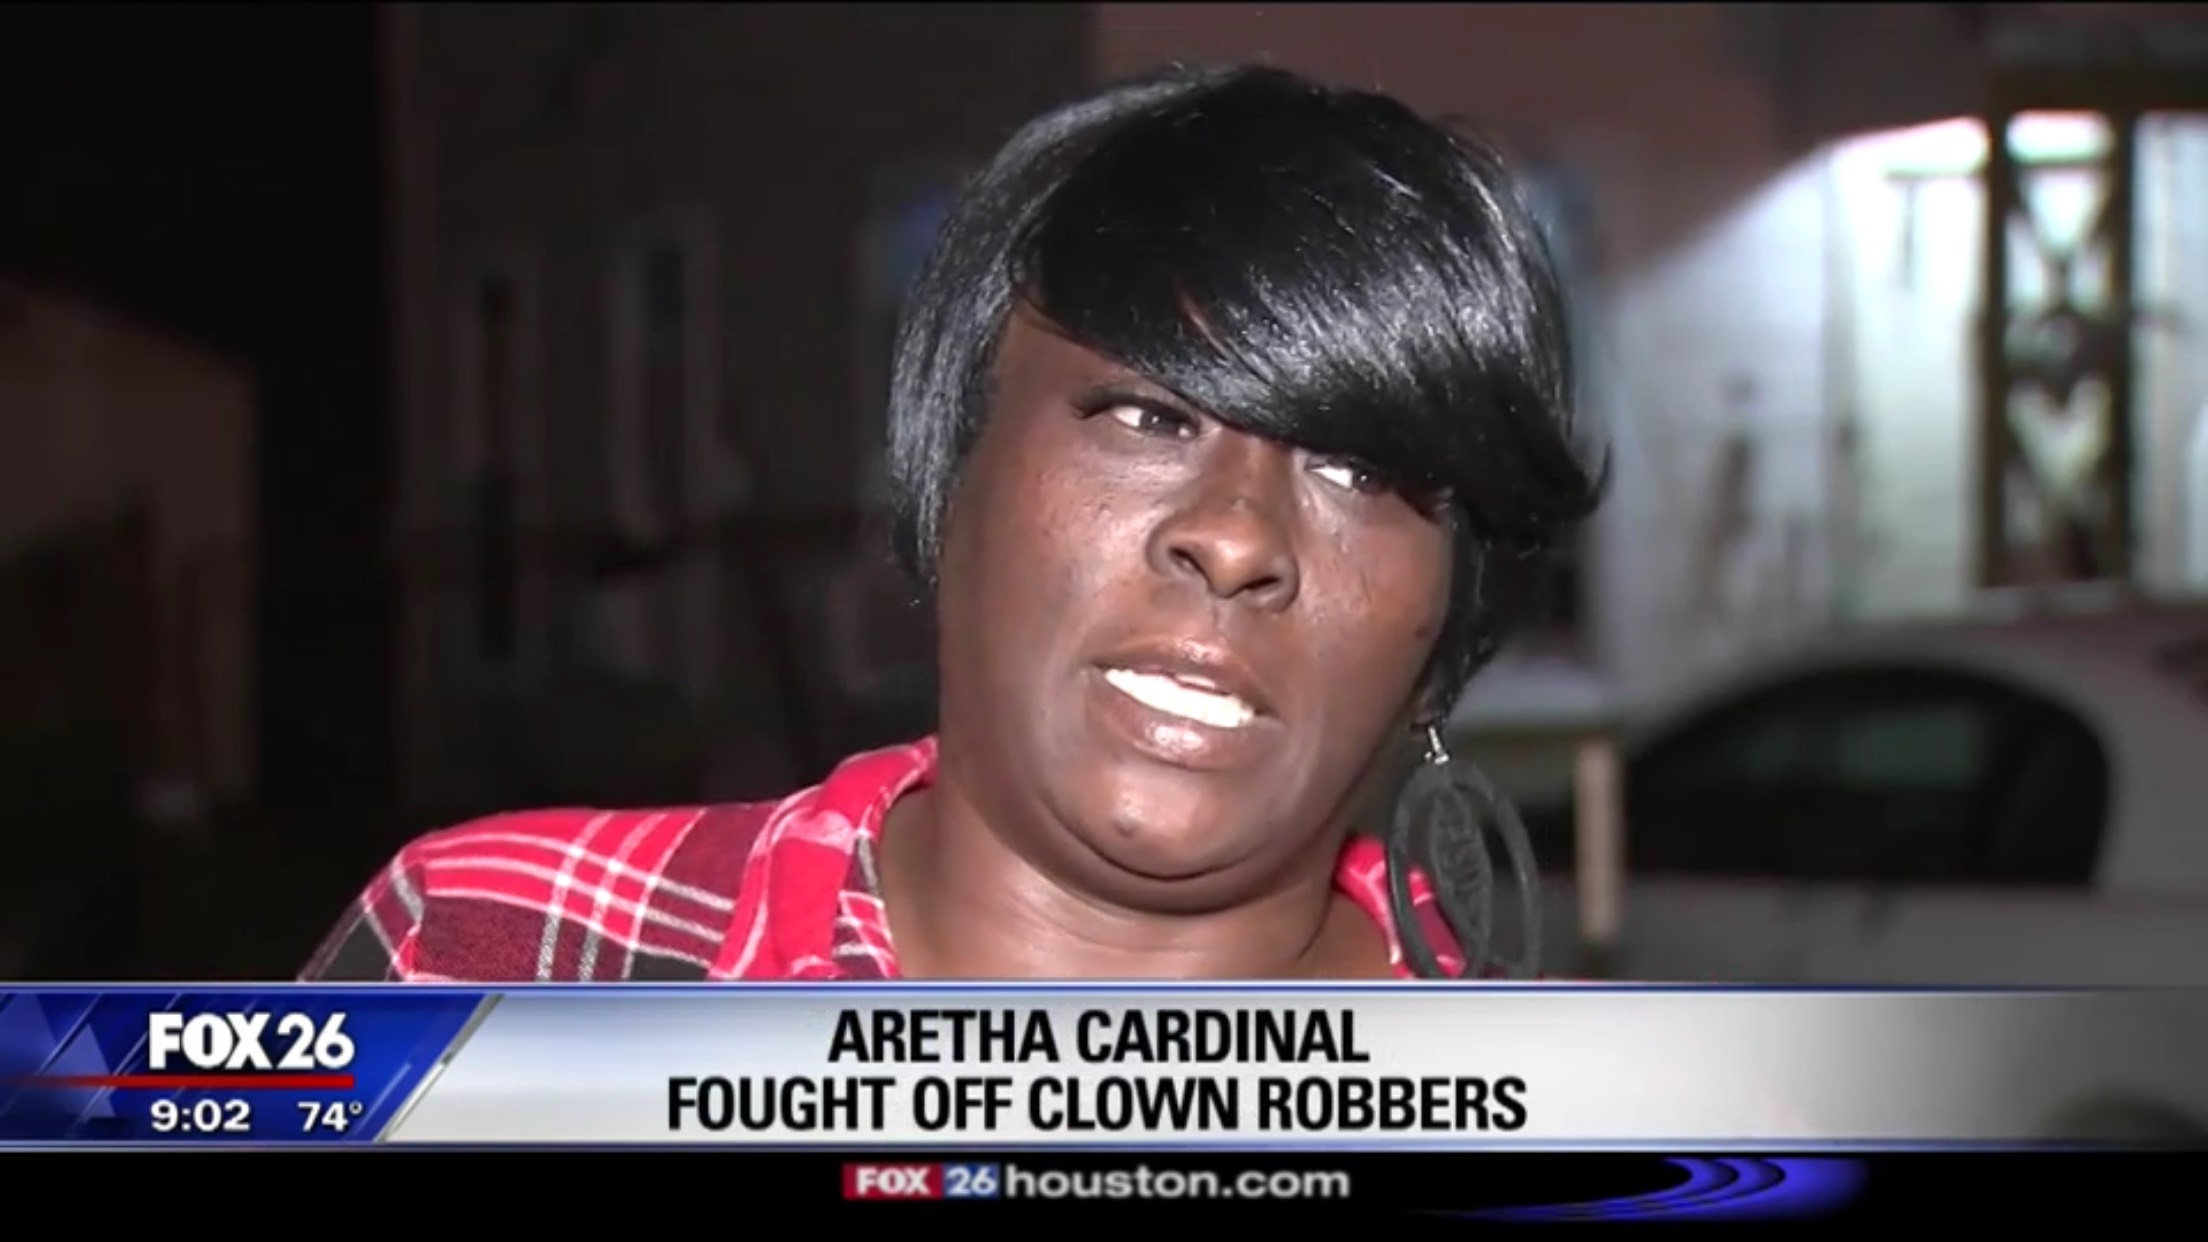 Aretha Cardinal: Fought Off Clown Robbers